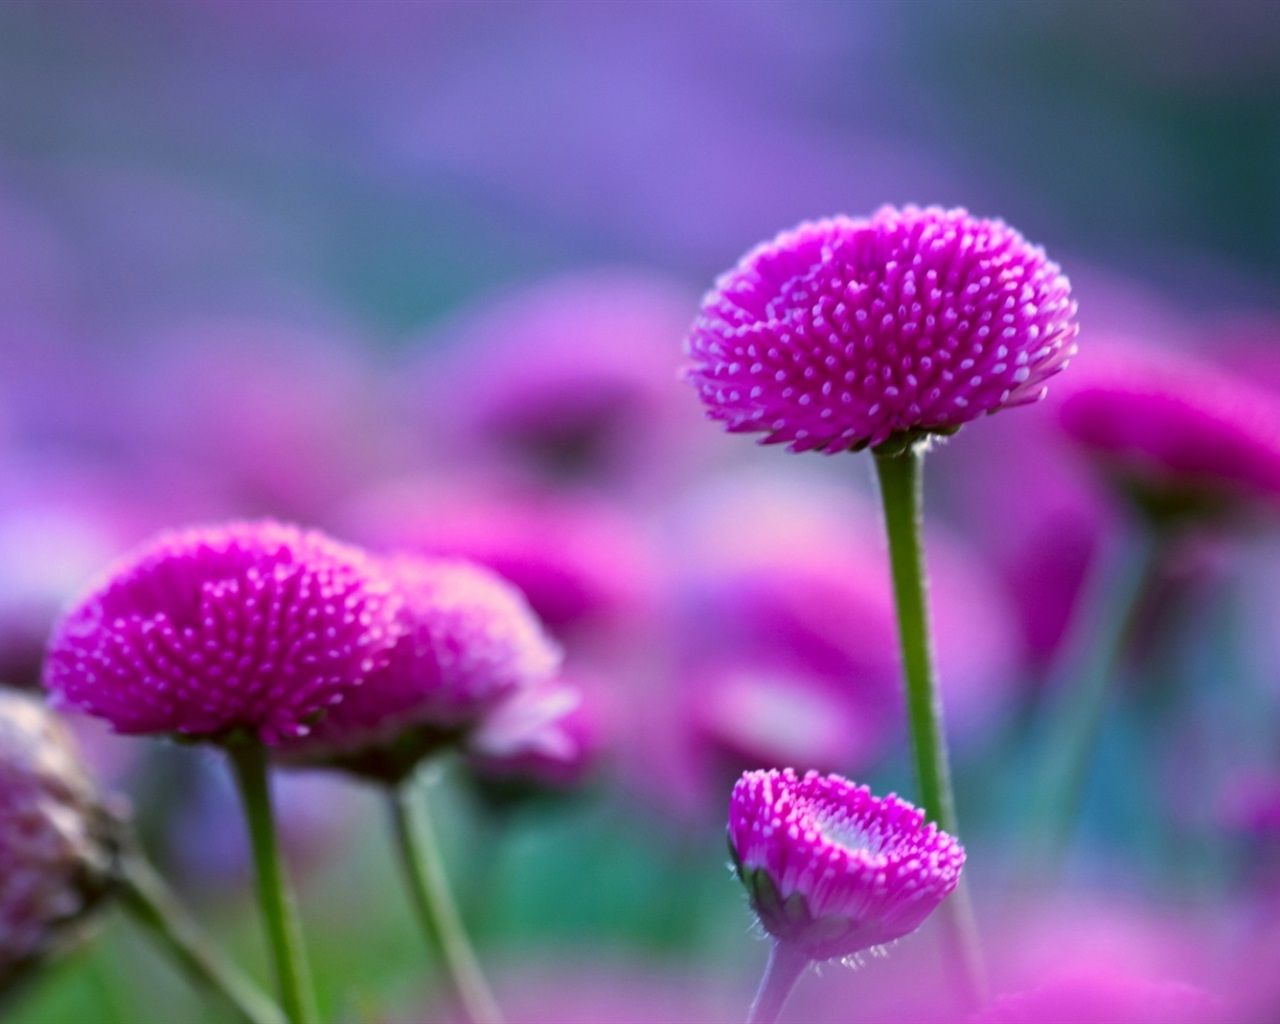 Purple flowers and fuzzy 1280x1024 wallpaper